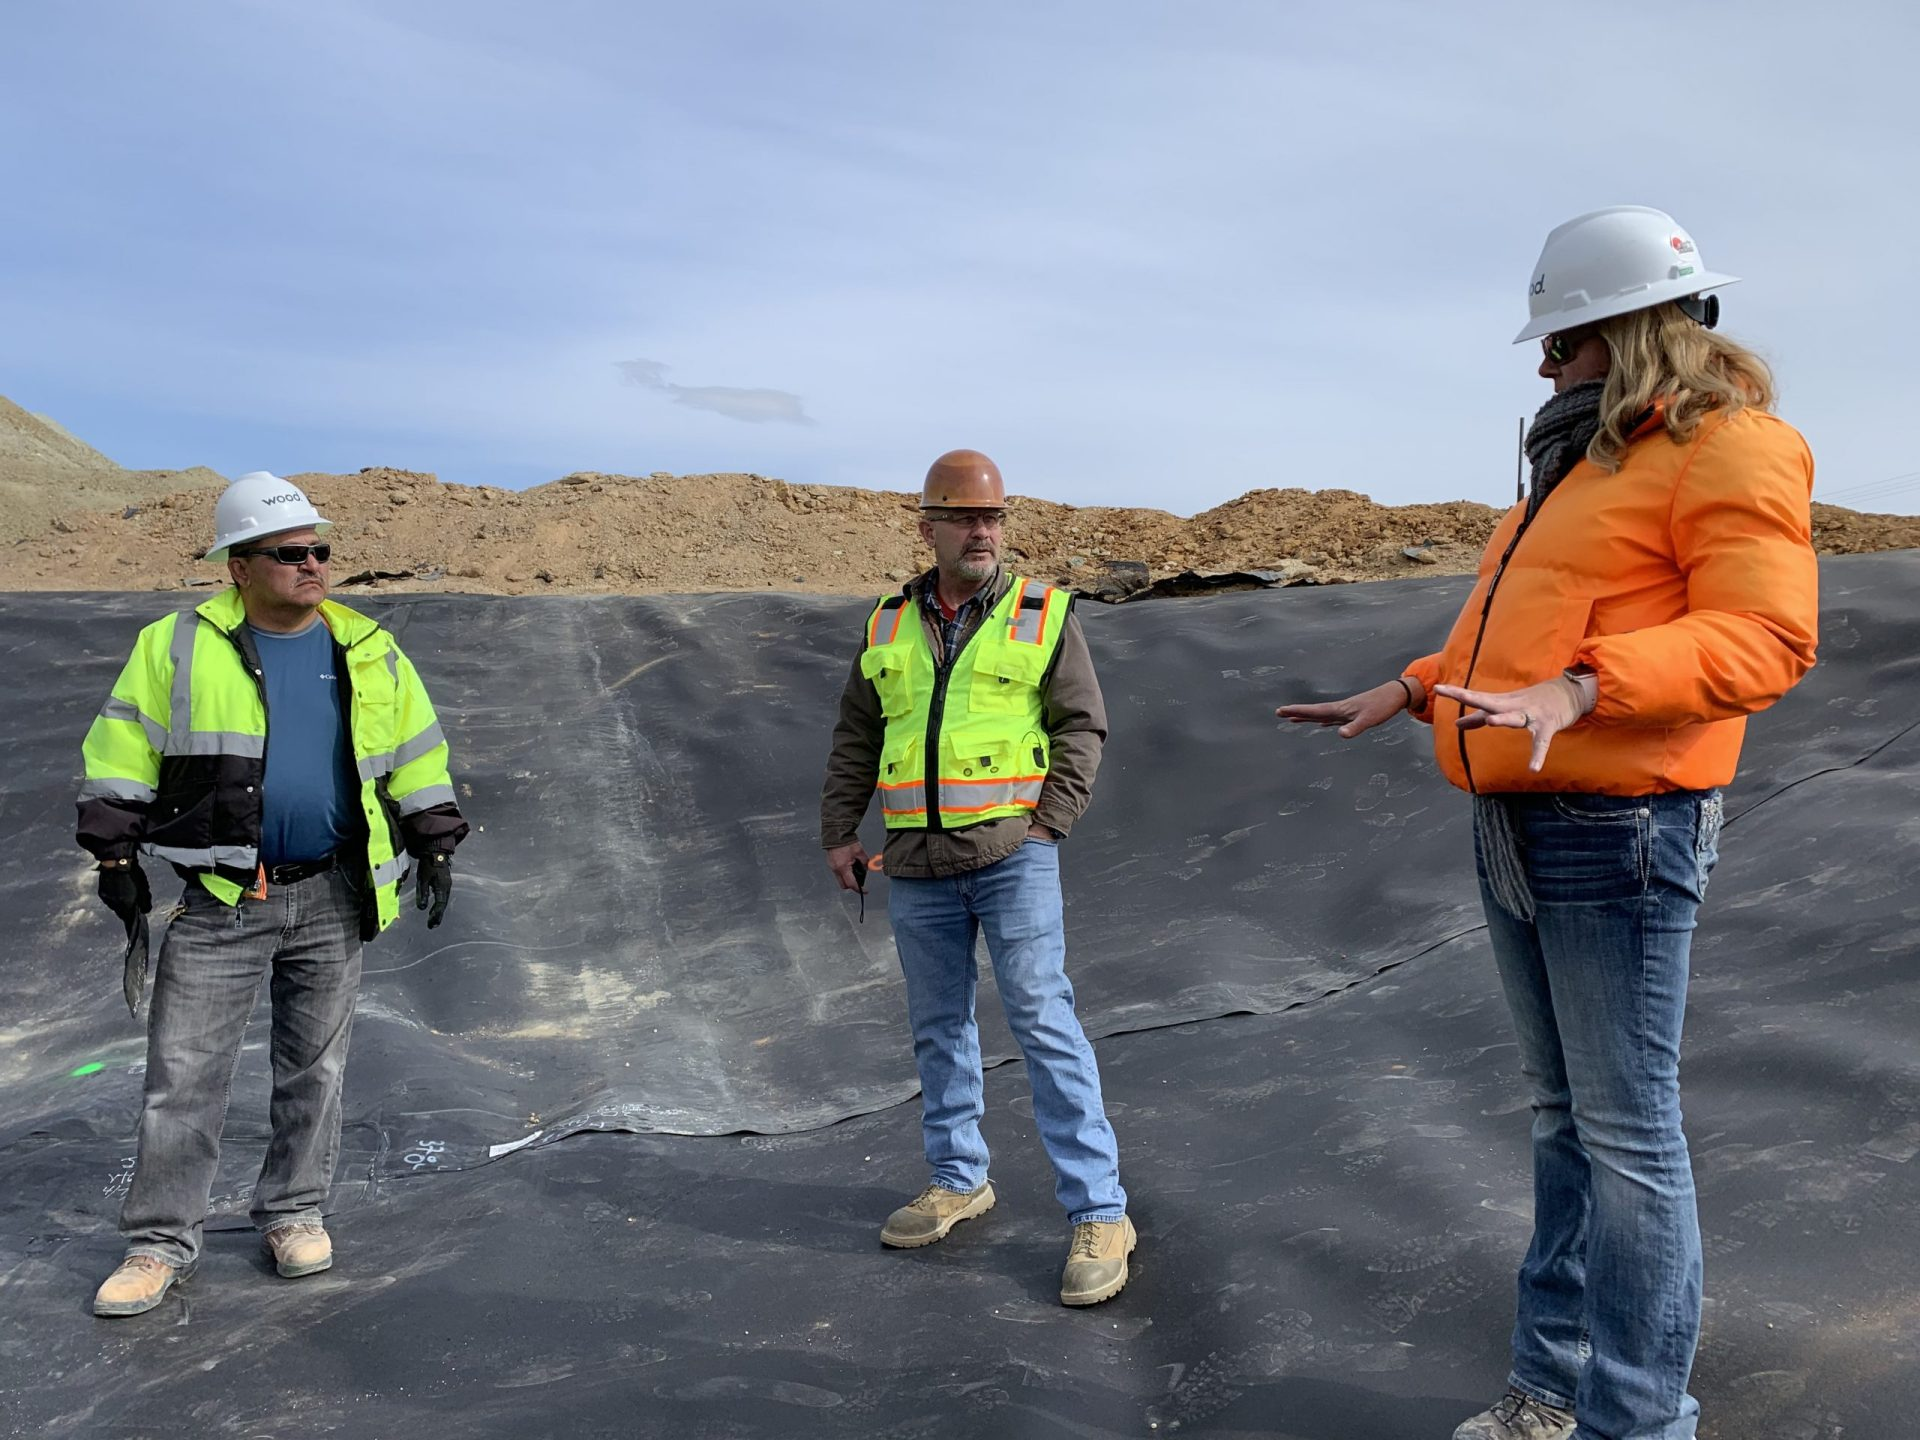 Construction workers survey remediation work a the Anaconda Copper Mine site in Mason Valley.